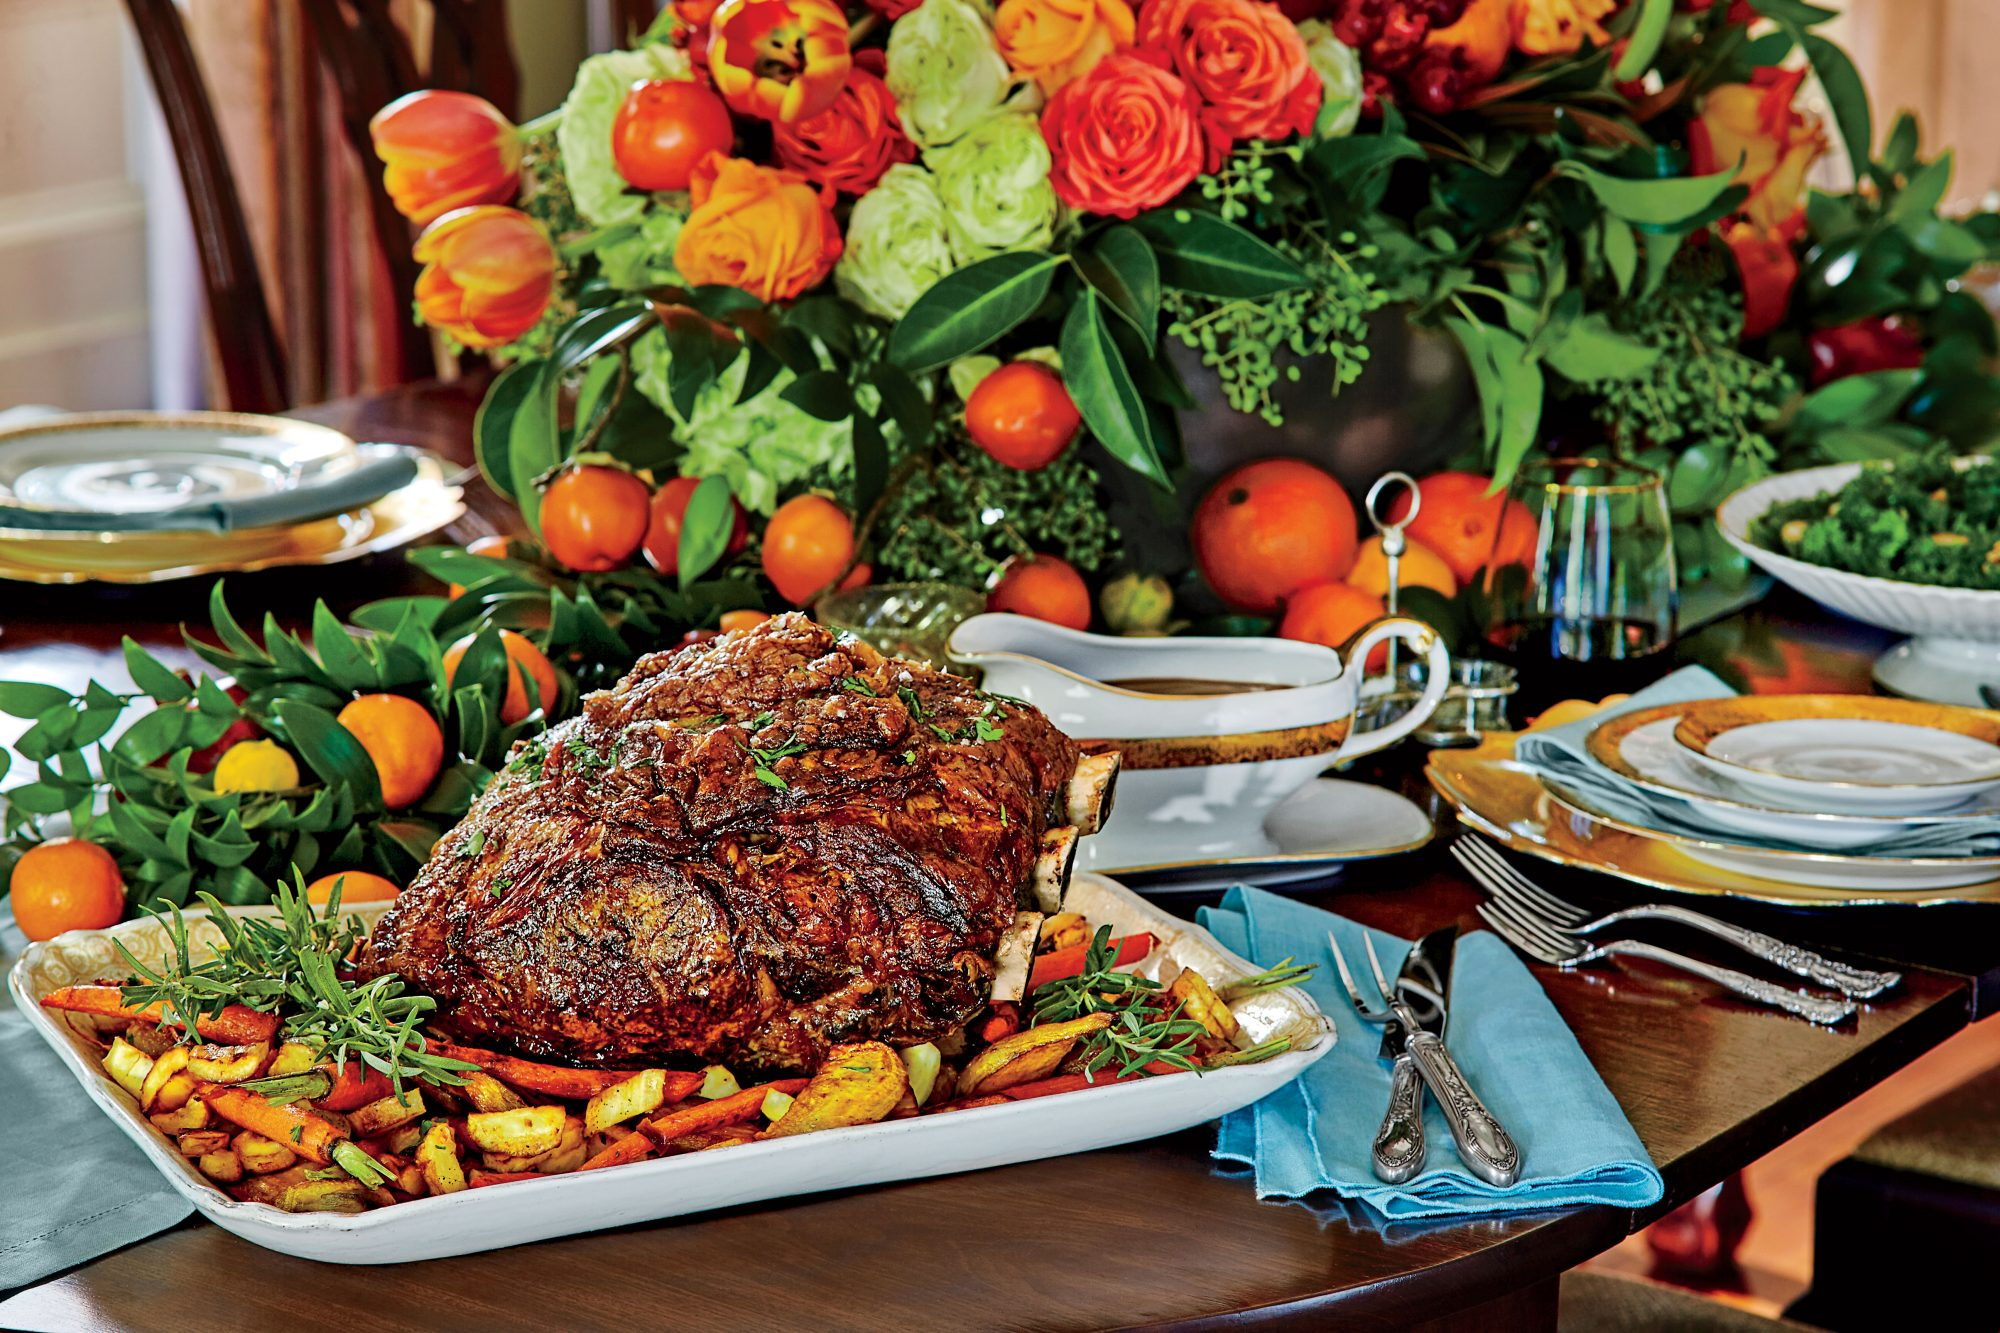 Peppercorn-Crusted Standing Rib Roast with Roasted Vegetables Lisa Cericola